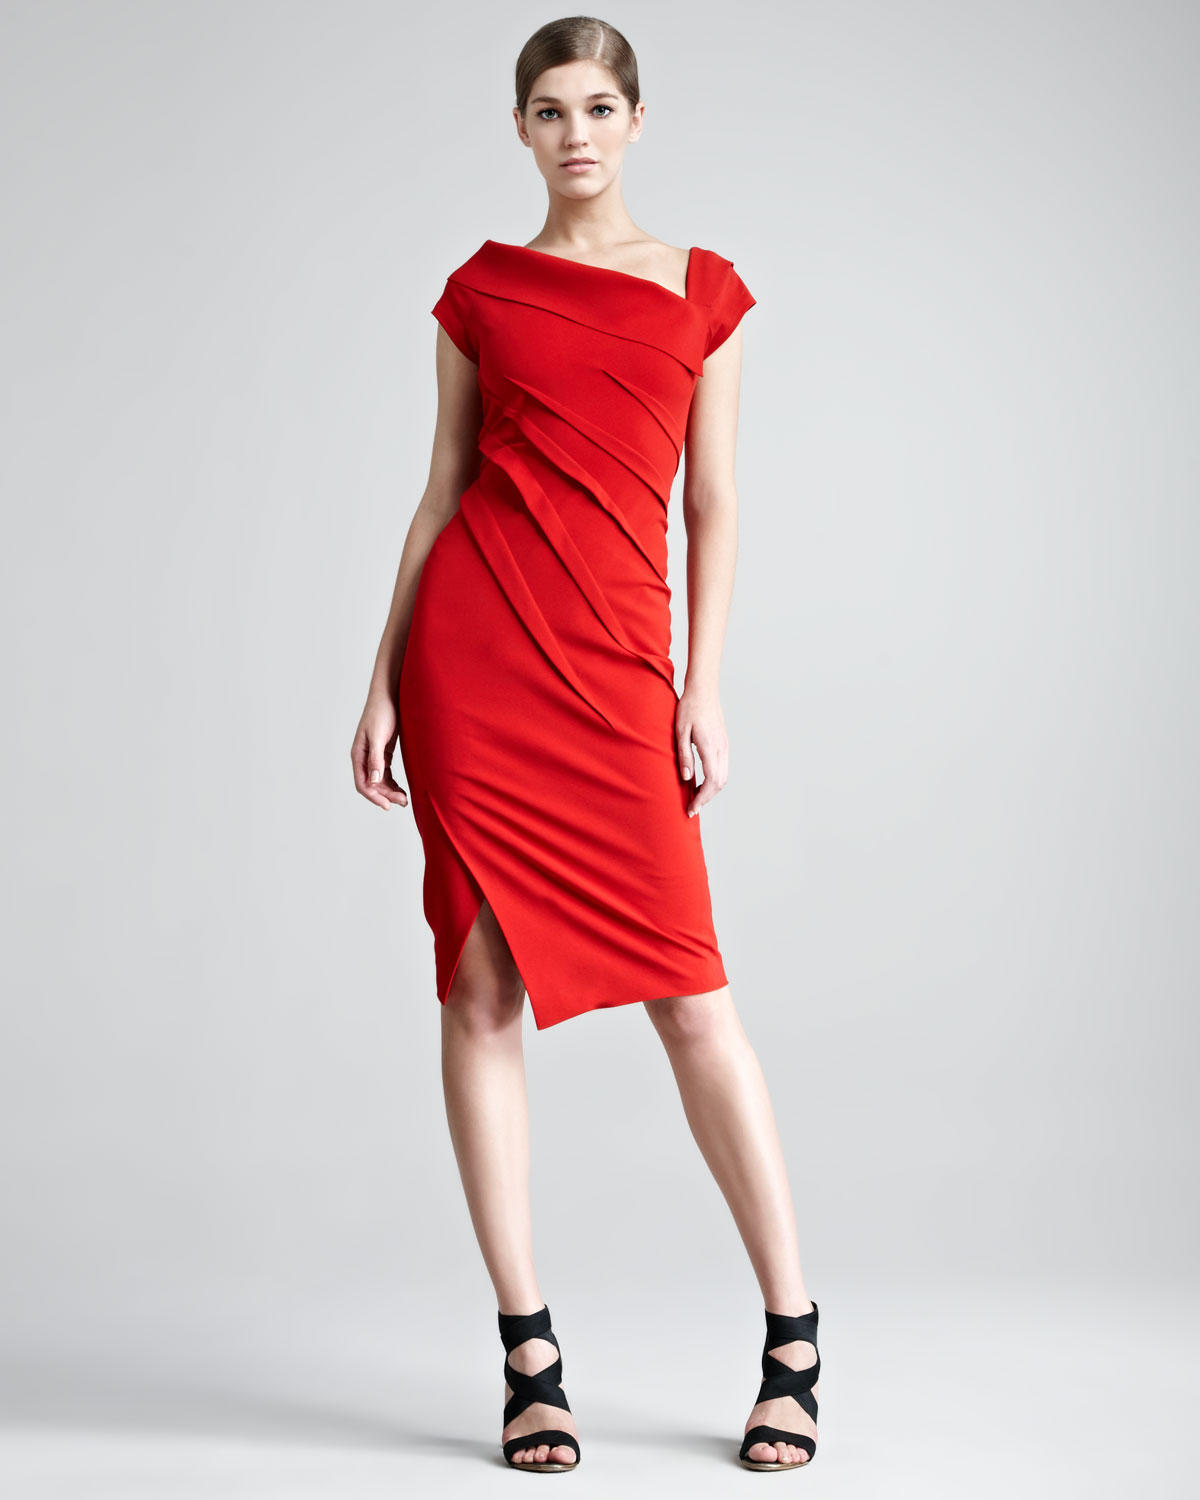 Donna Karan Red Dress - RP Dress